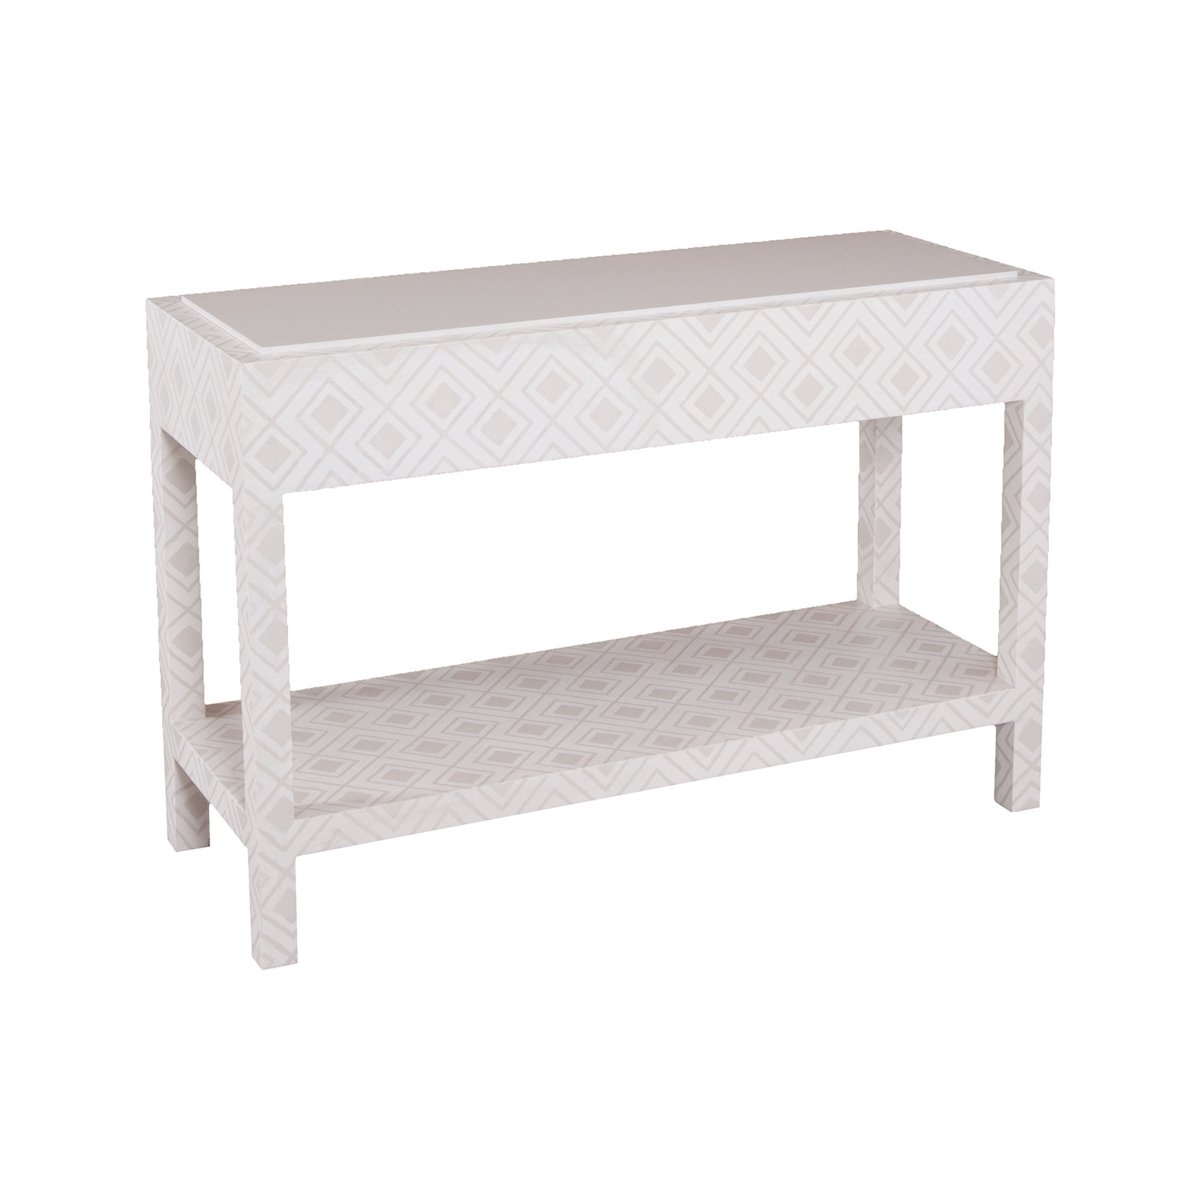 Kent Fabric Wrapped Console | Products In 2018 | Pinterest Intended For Parsons Concrete Top & Stainless Steel Base 48X16 Console Tables (Gallery 19 of 20)